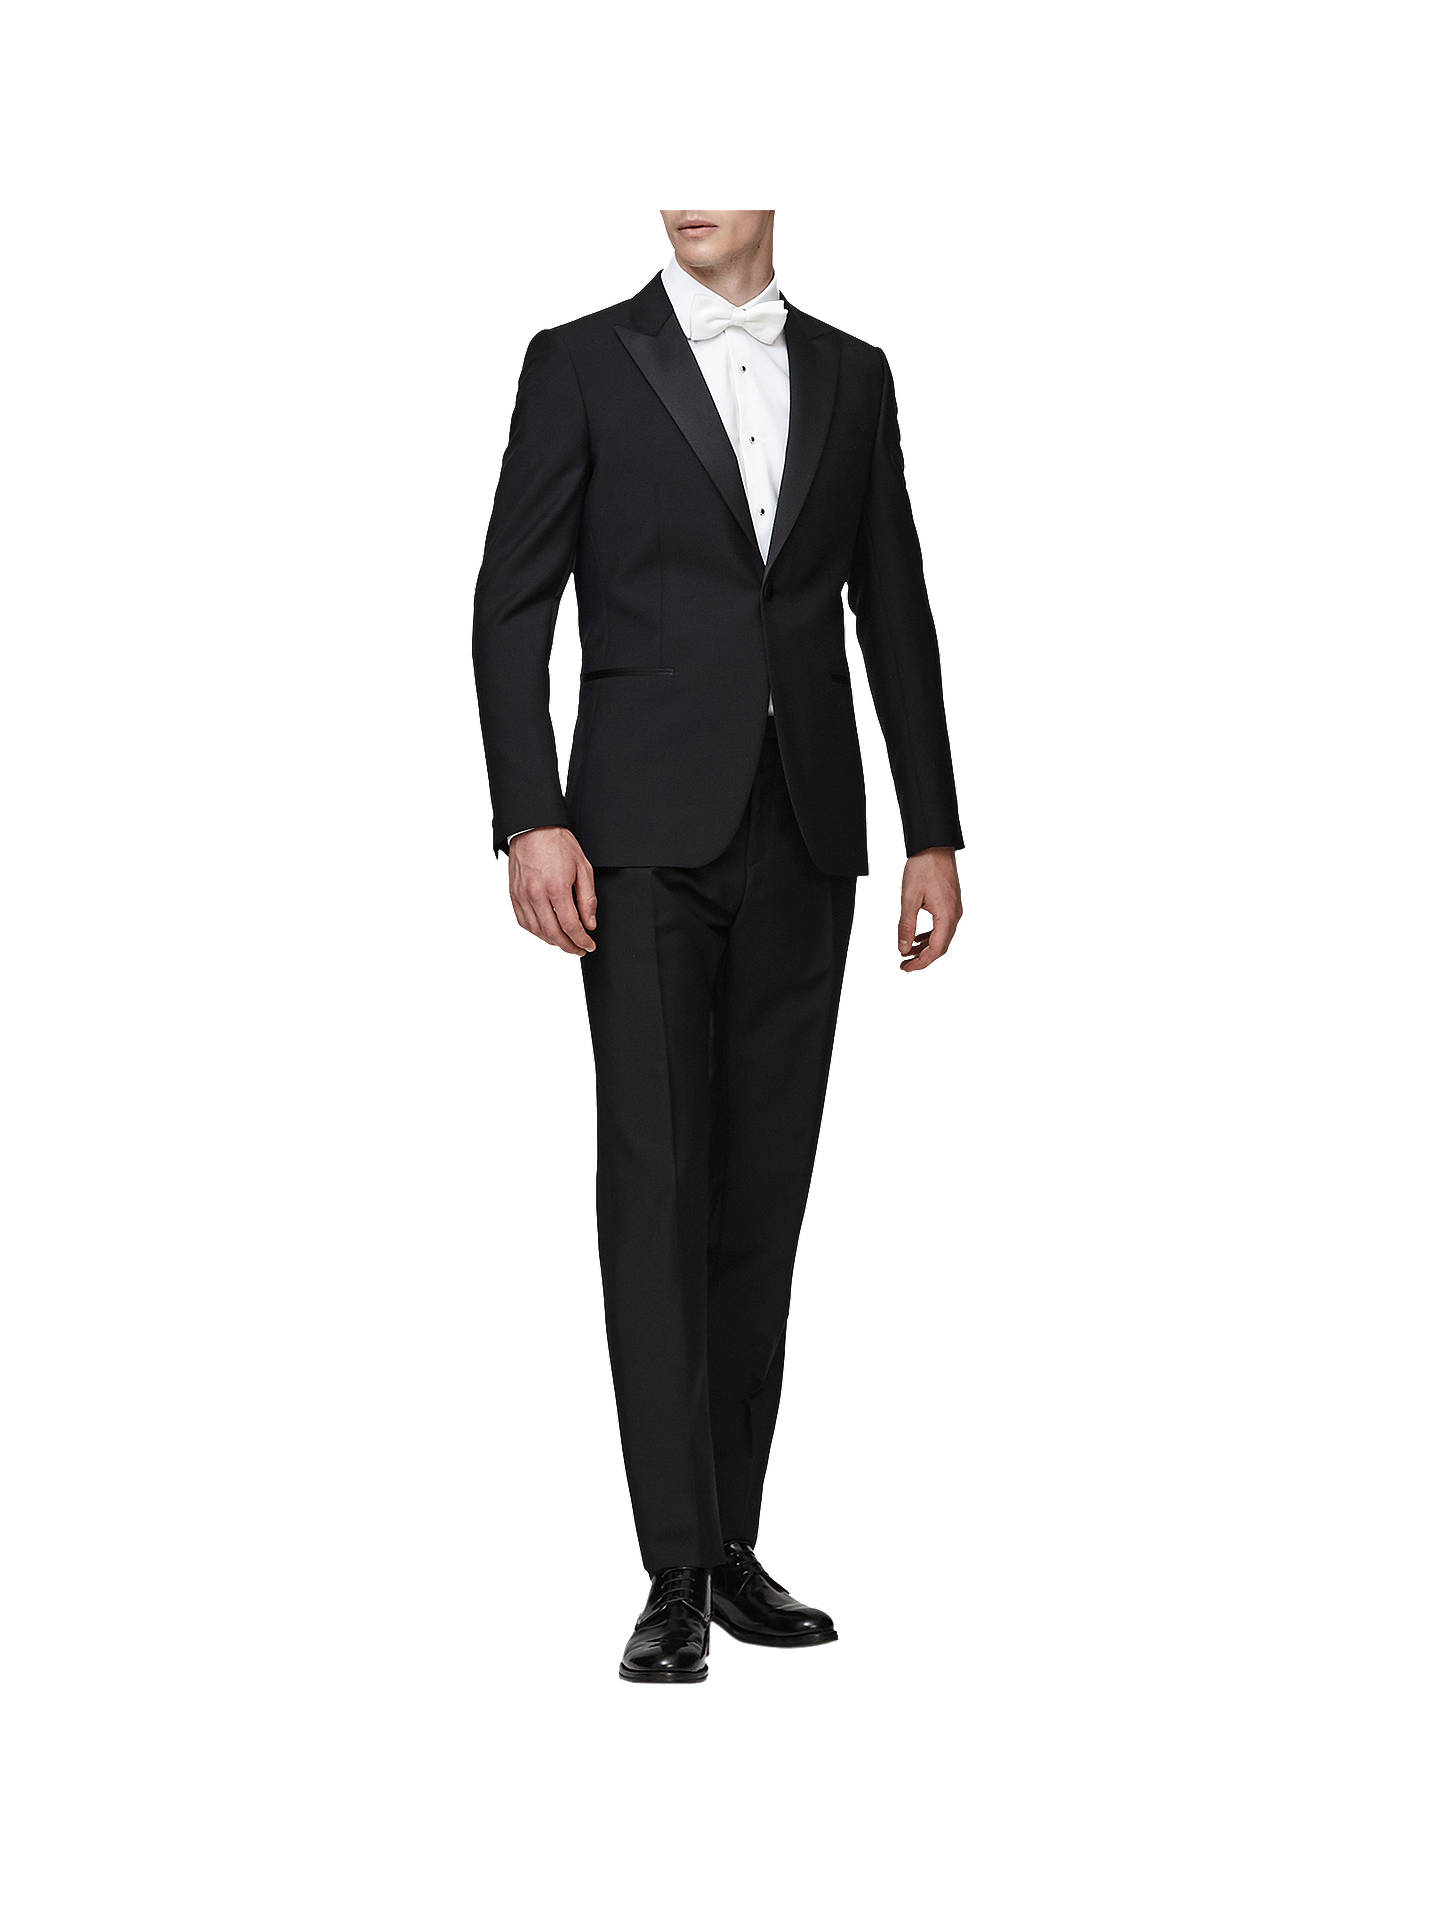 Buy Reiss Mayfair Peak Lapel Modern Fit Dinner Suit, Black, 36R Online at johnlewis.com